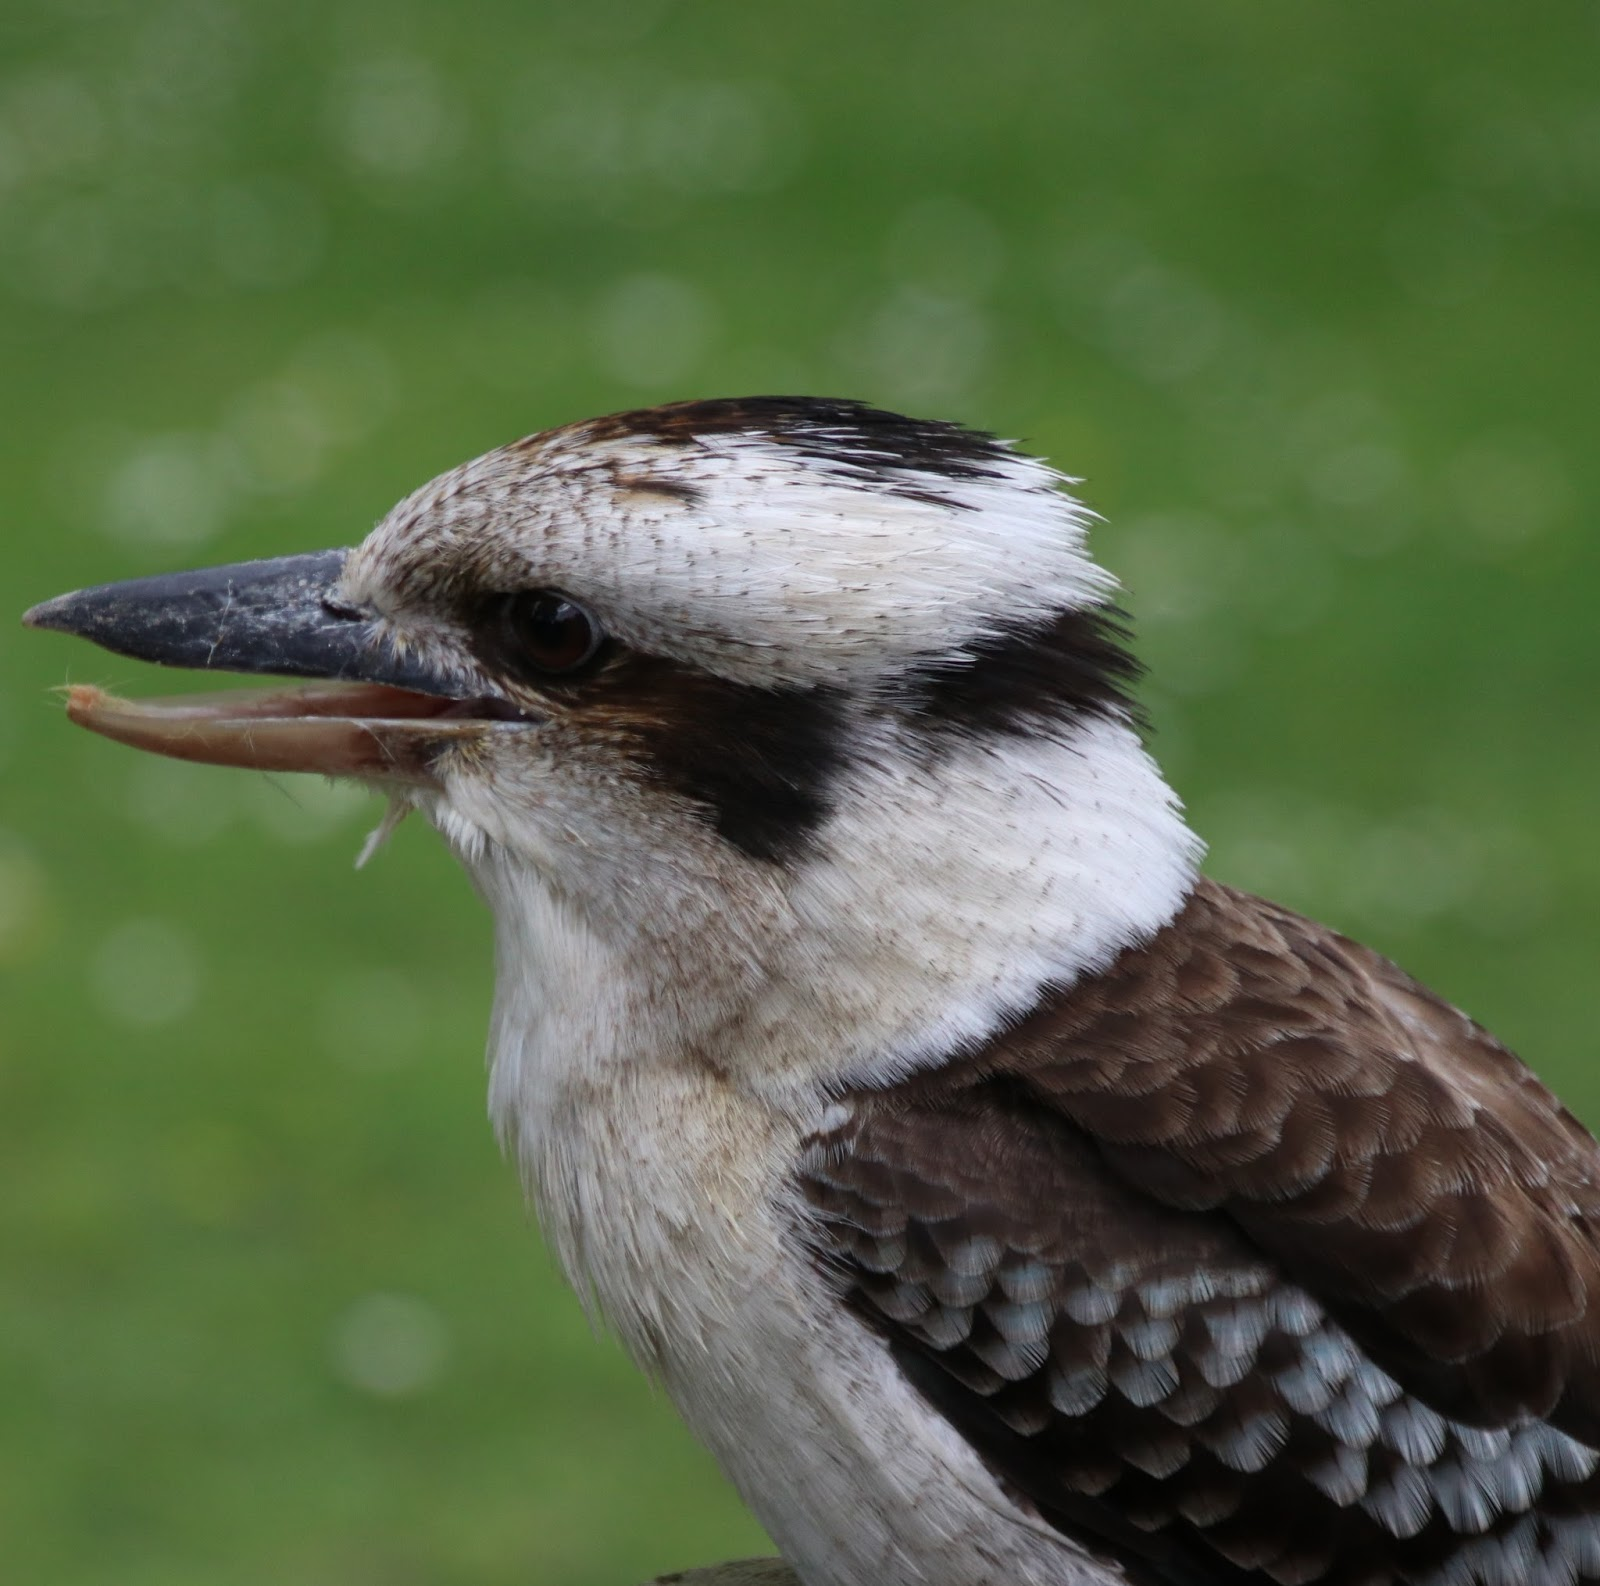 Picture of a laughing kookaburra bird.